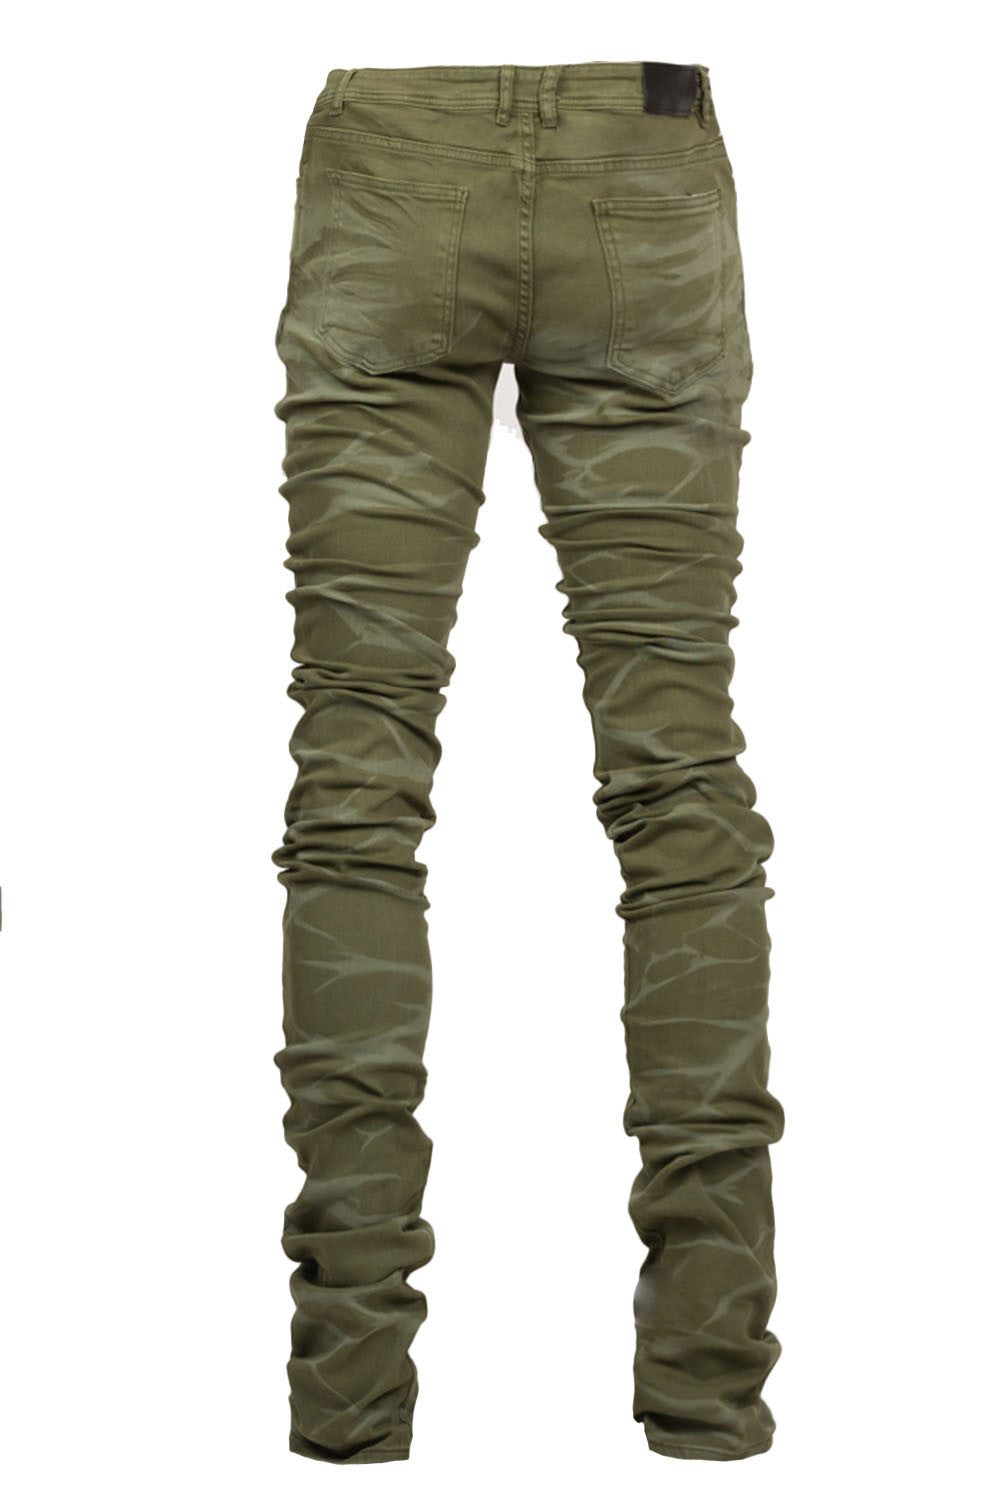 Cano Stacked Olive Denim